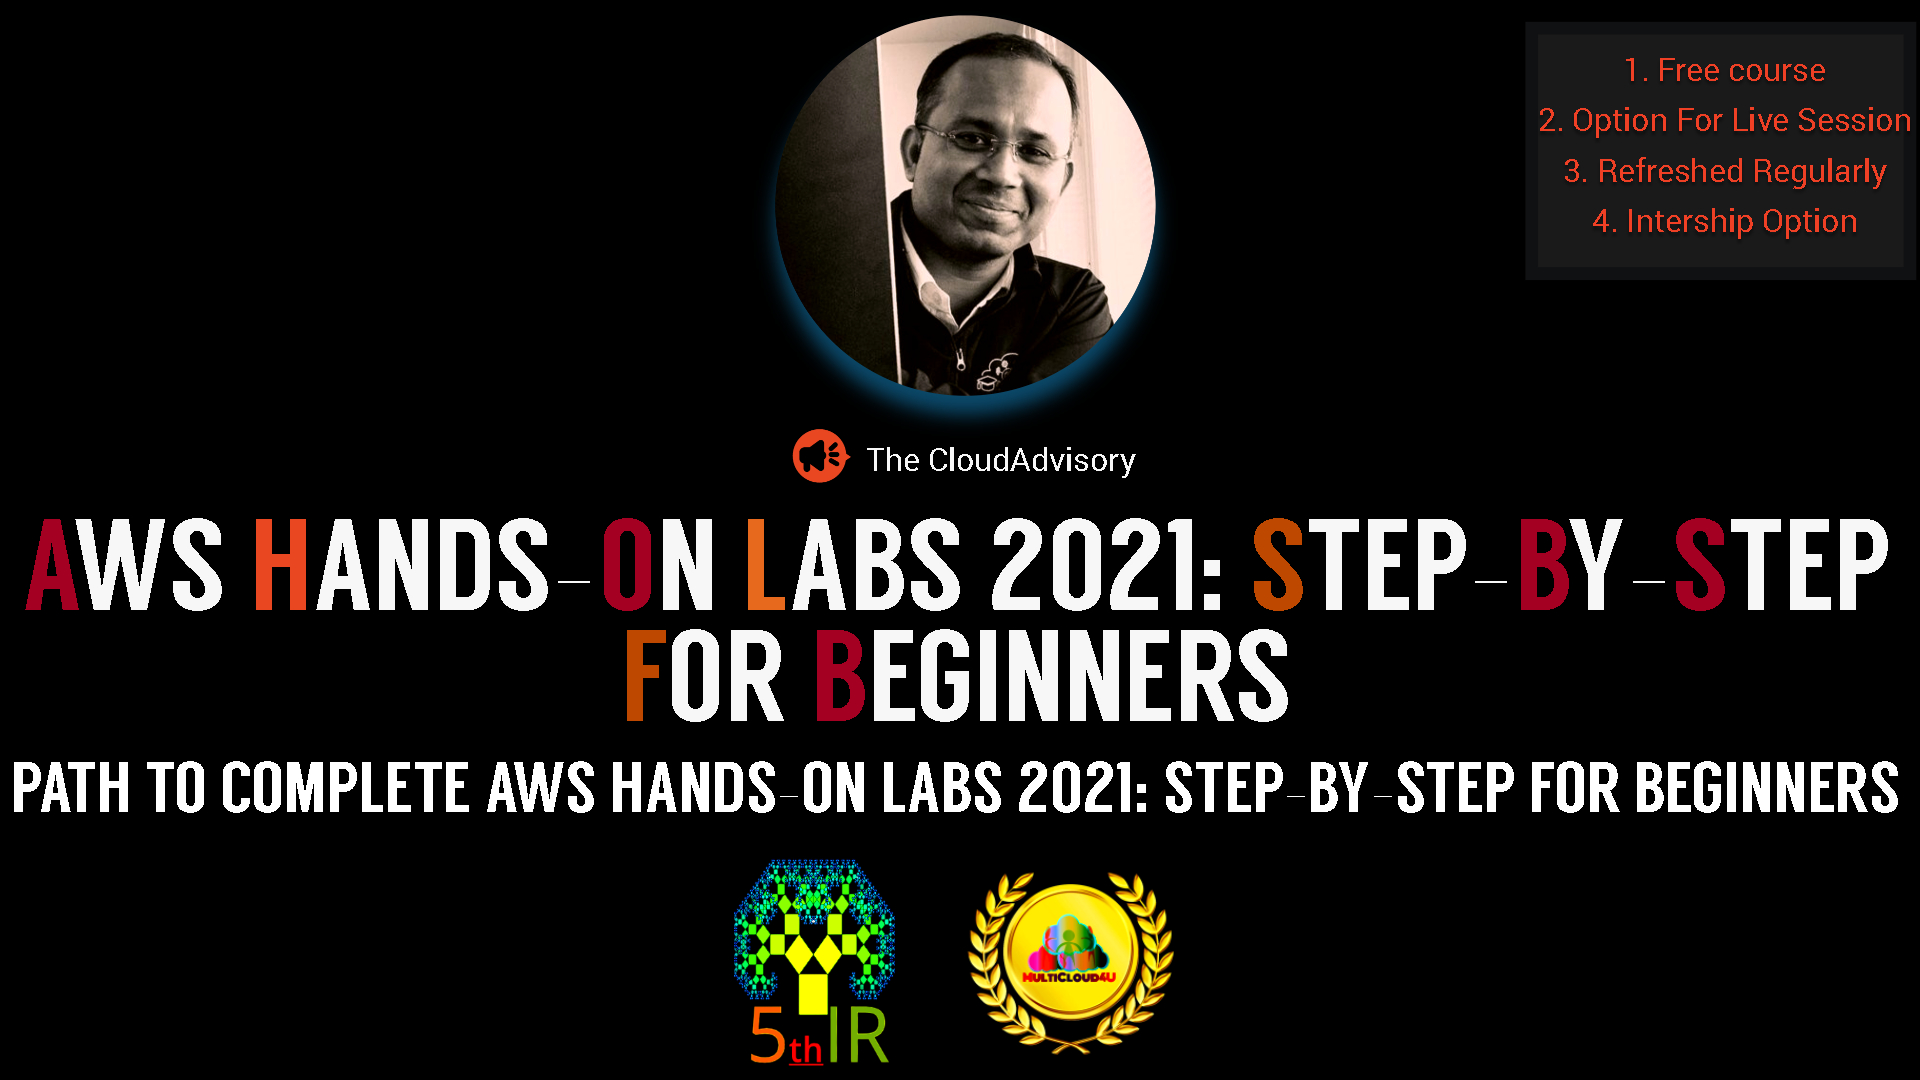 AWS Hands-on Labs 2021: Step-by-step for Beginners NEW